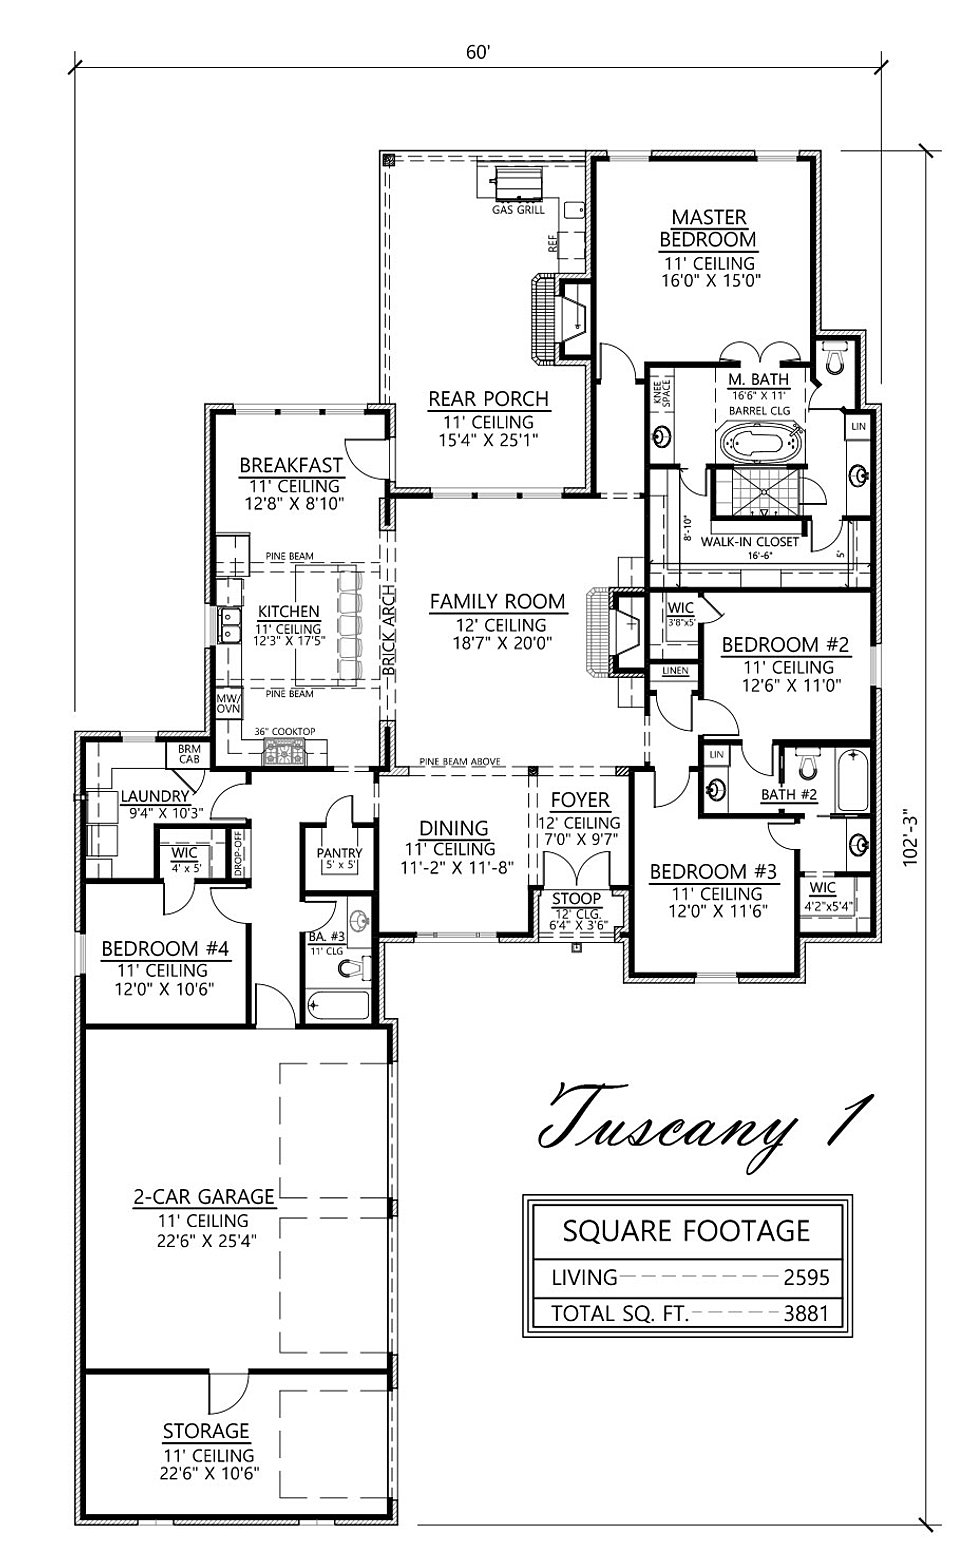 madden home design - the tuscany i